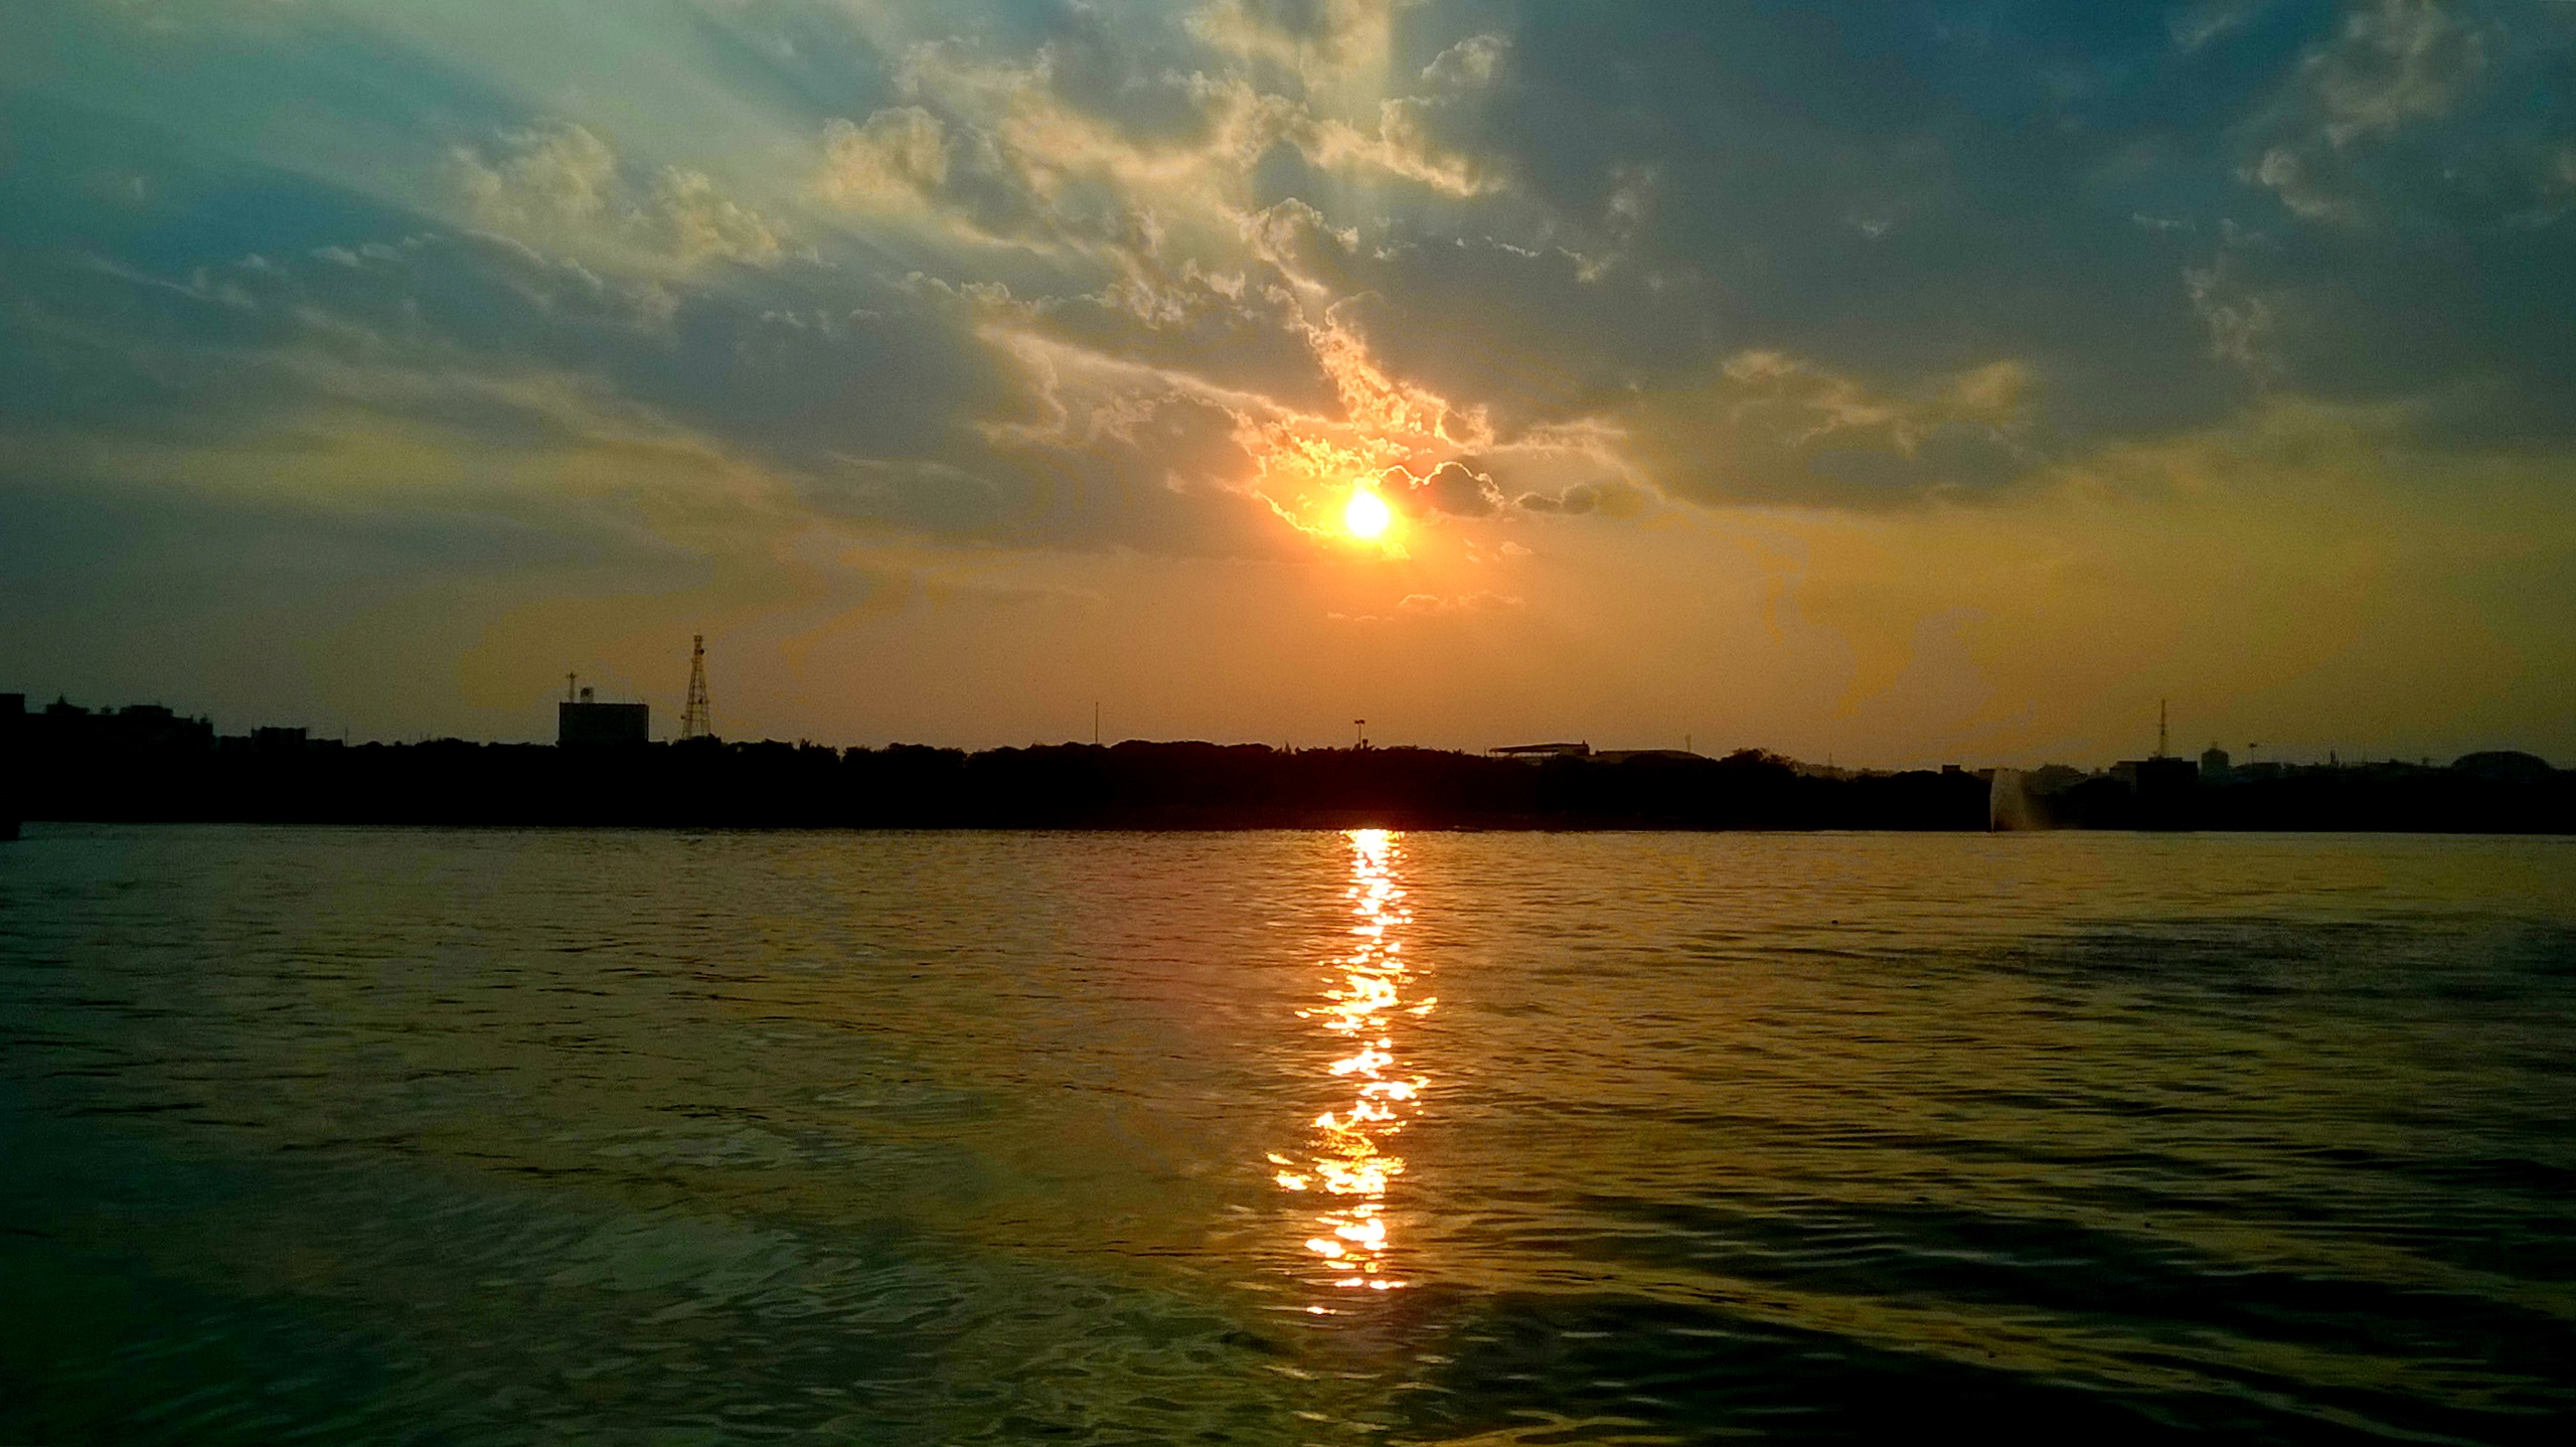 The view of the sunset from the boat.